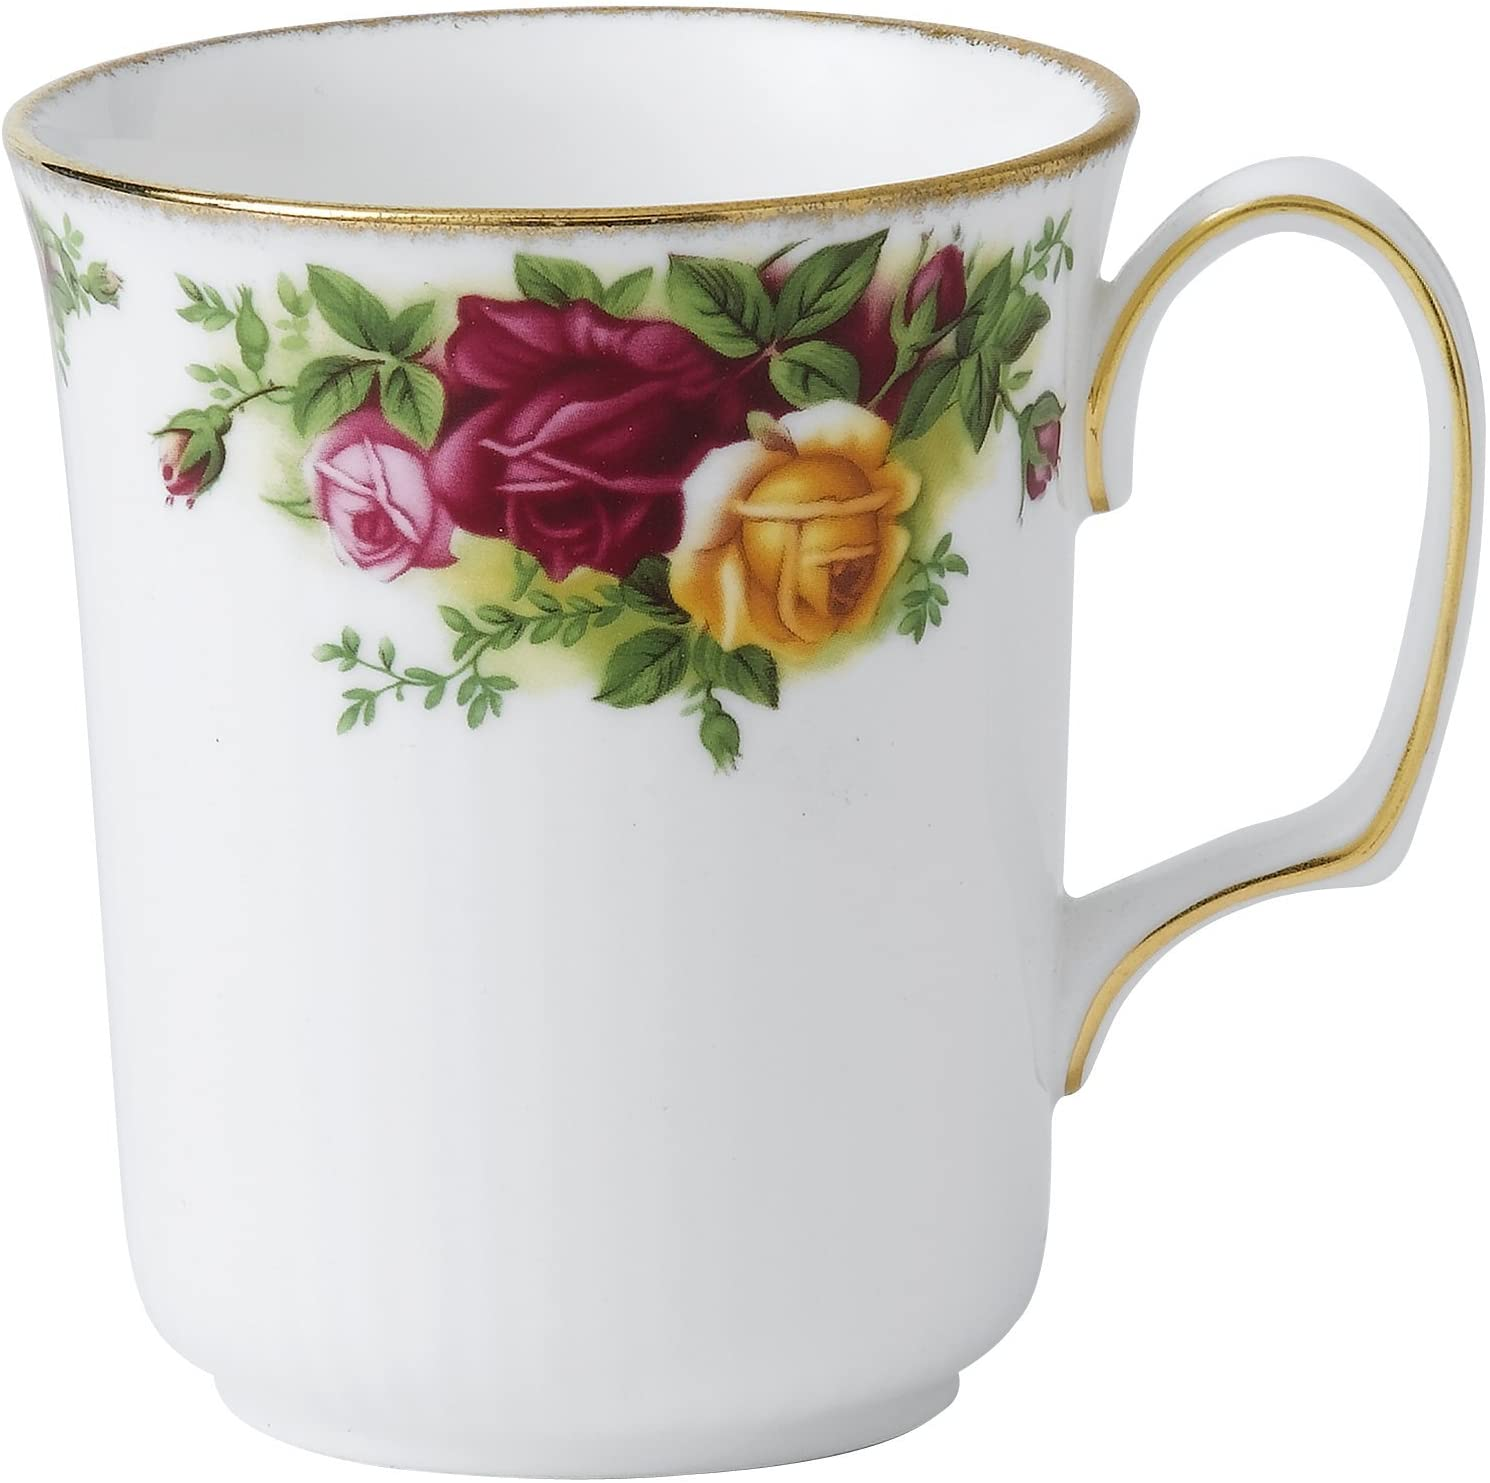 Royal Doulton Old Country Rose Montrose Mug Mostly White With Multicolored Floral Print Home Kitchen